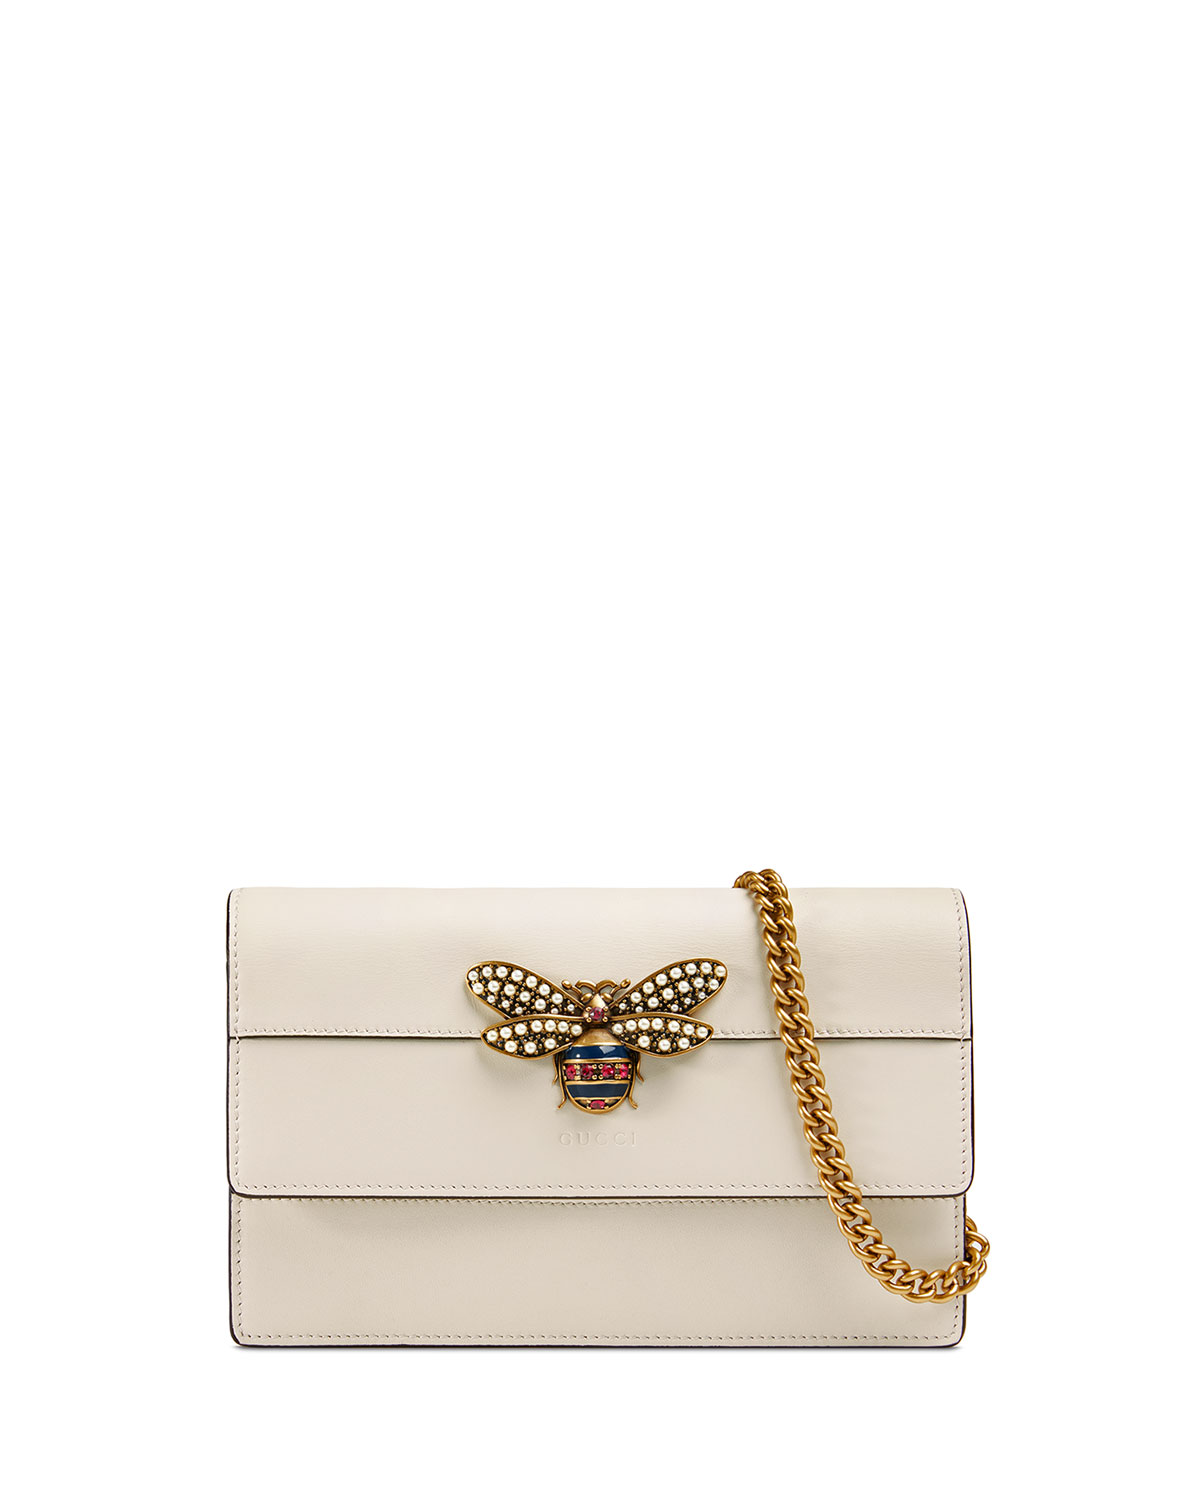 9652b58a4c4 Gucci Queen Margaret Leather Bee Wallet On Chain Bag   Neiman Marcus